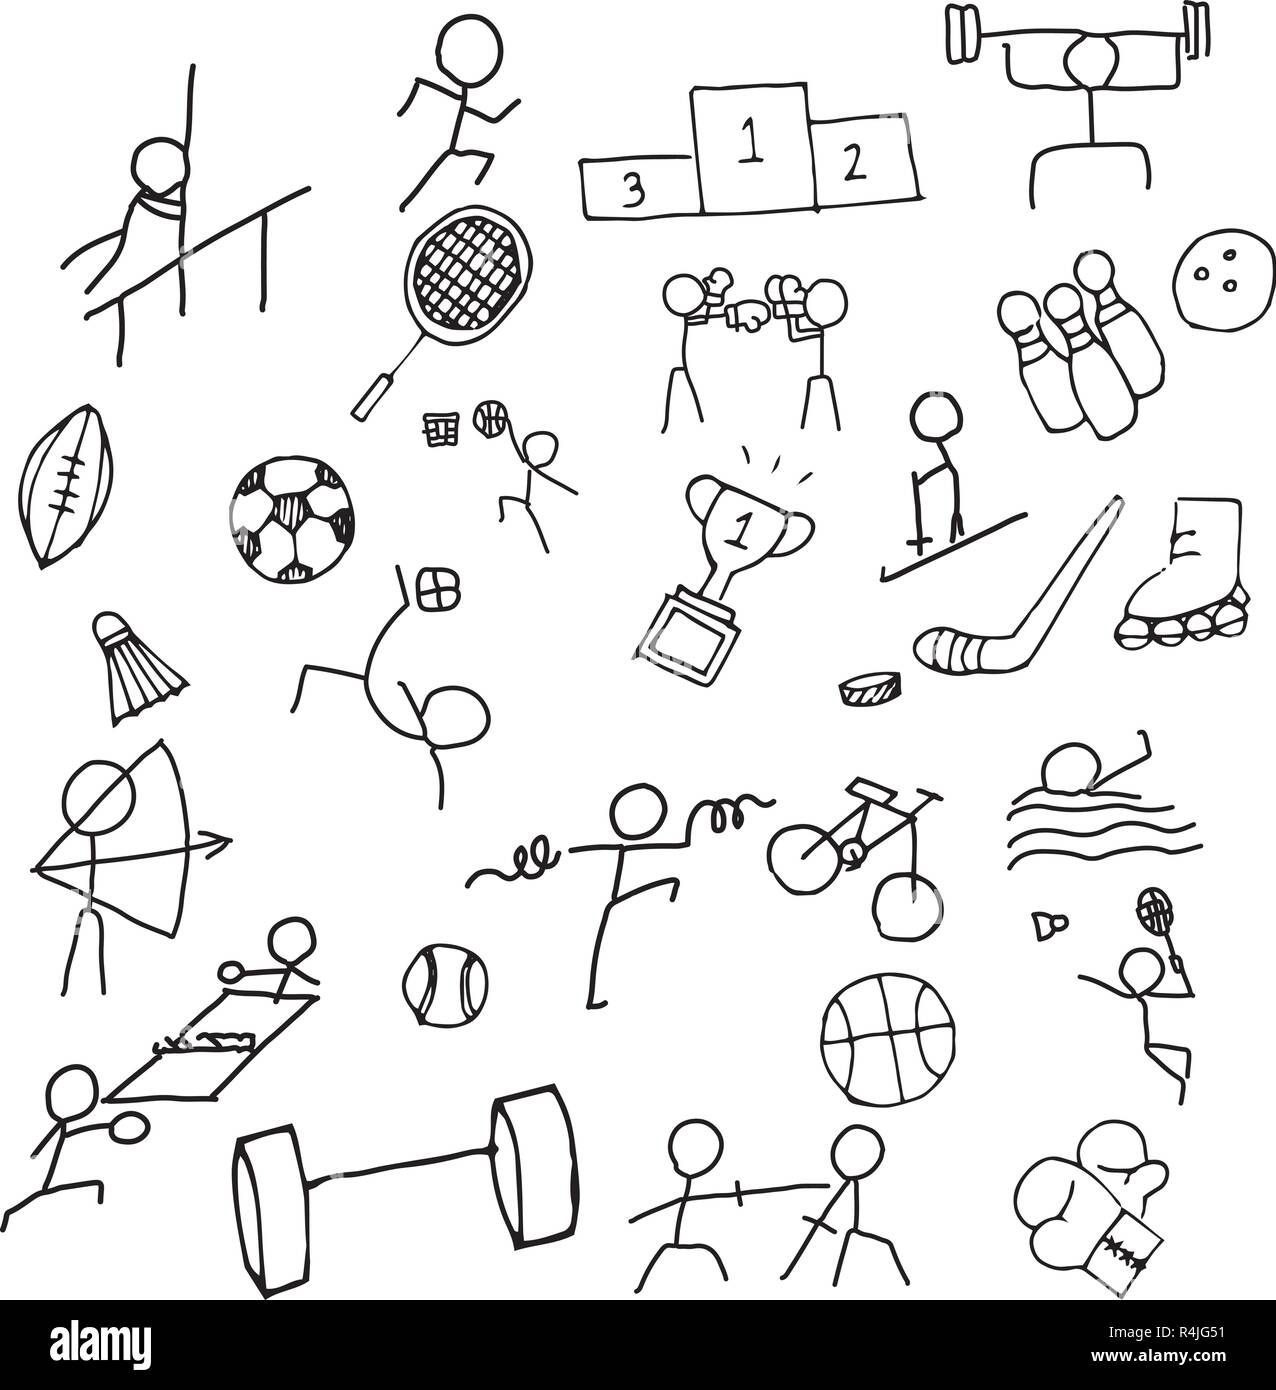 Sport Doodle art icon set. Thin line icon for Sea game and Olympic game. Hand drawn graphic design art. Exercise and Competition concept. - Stock Image